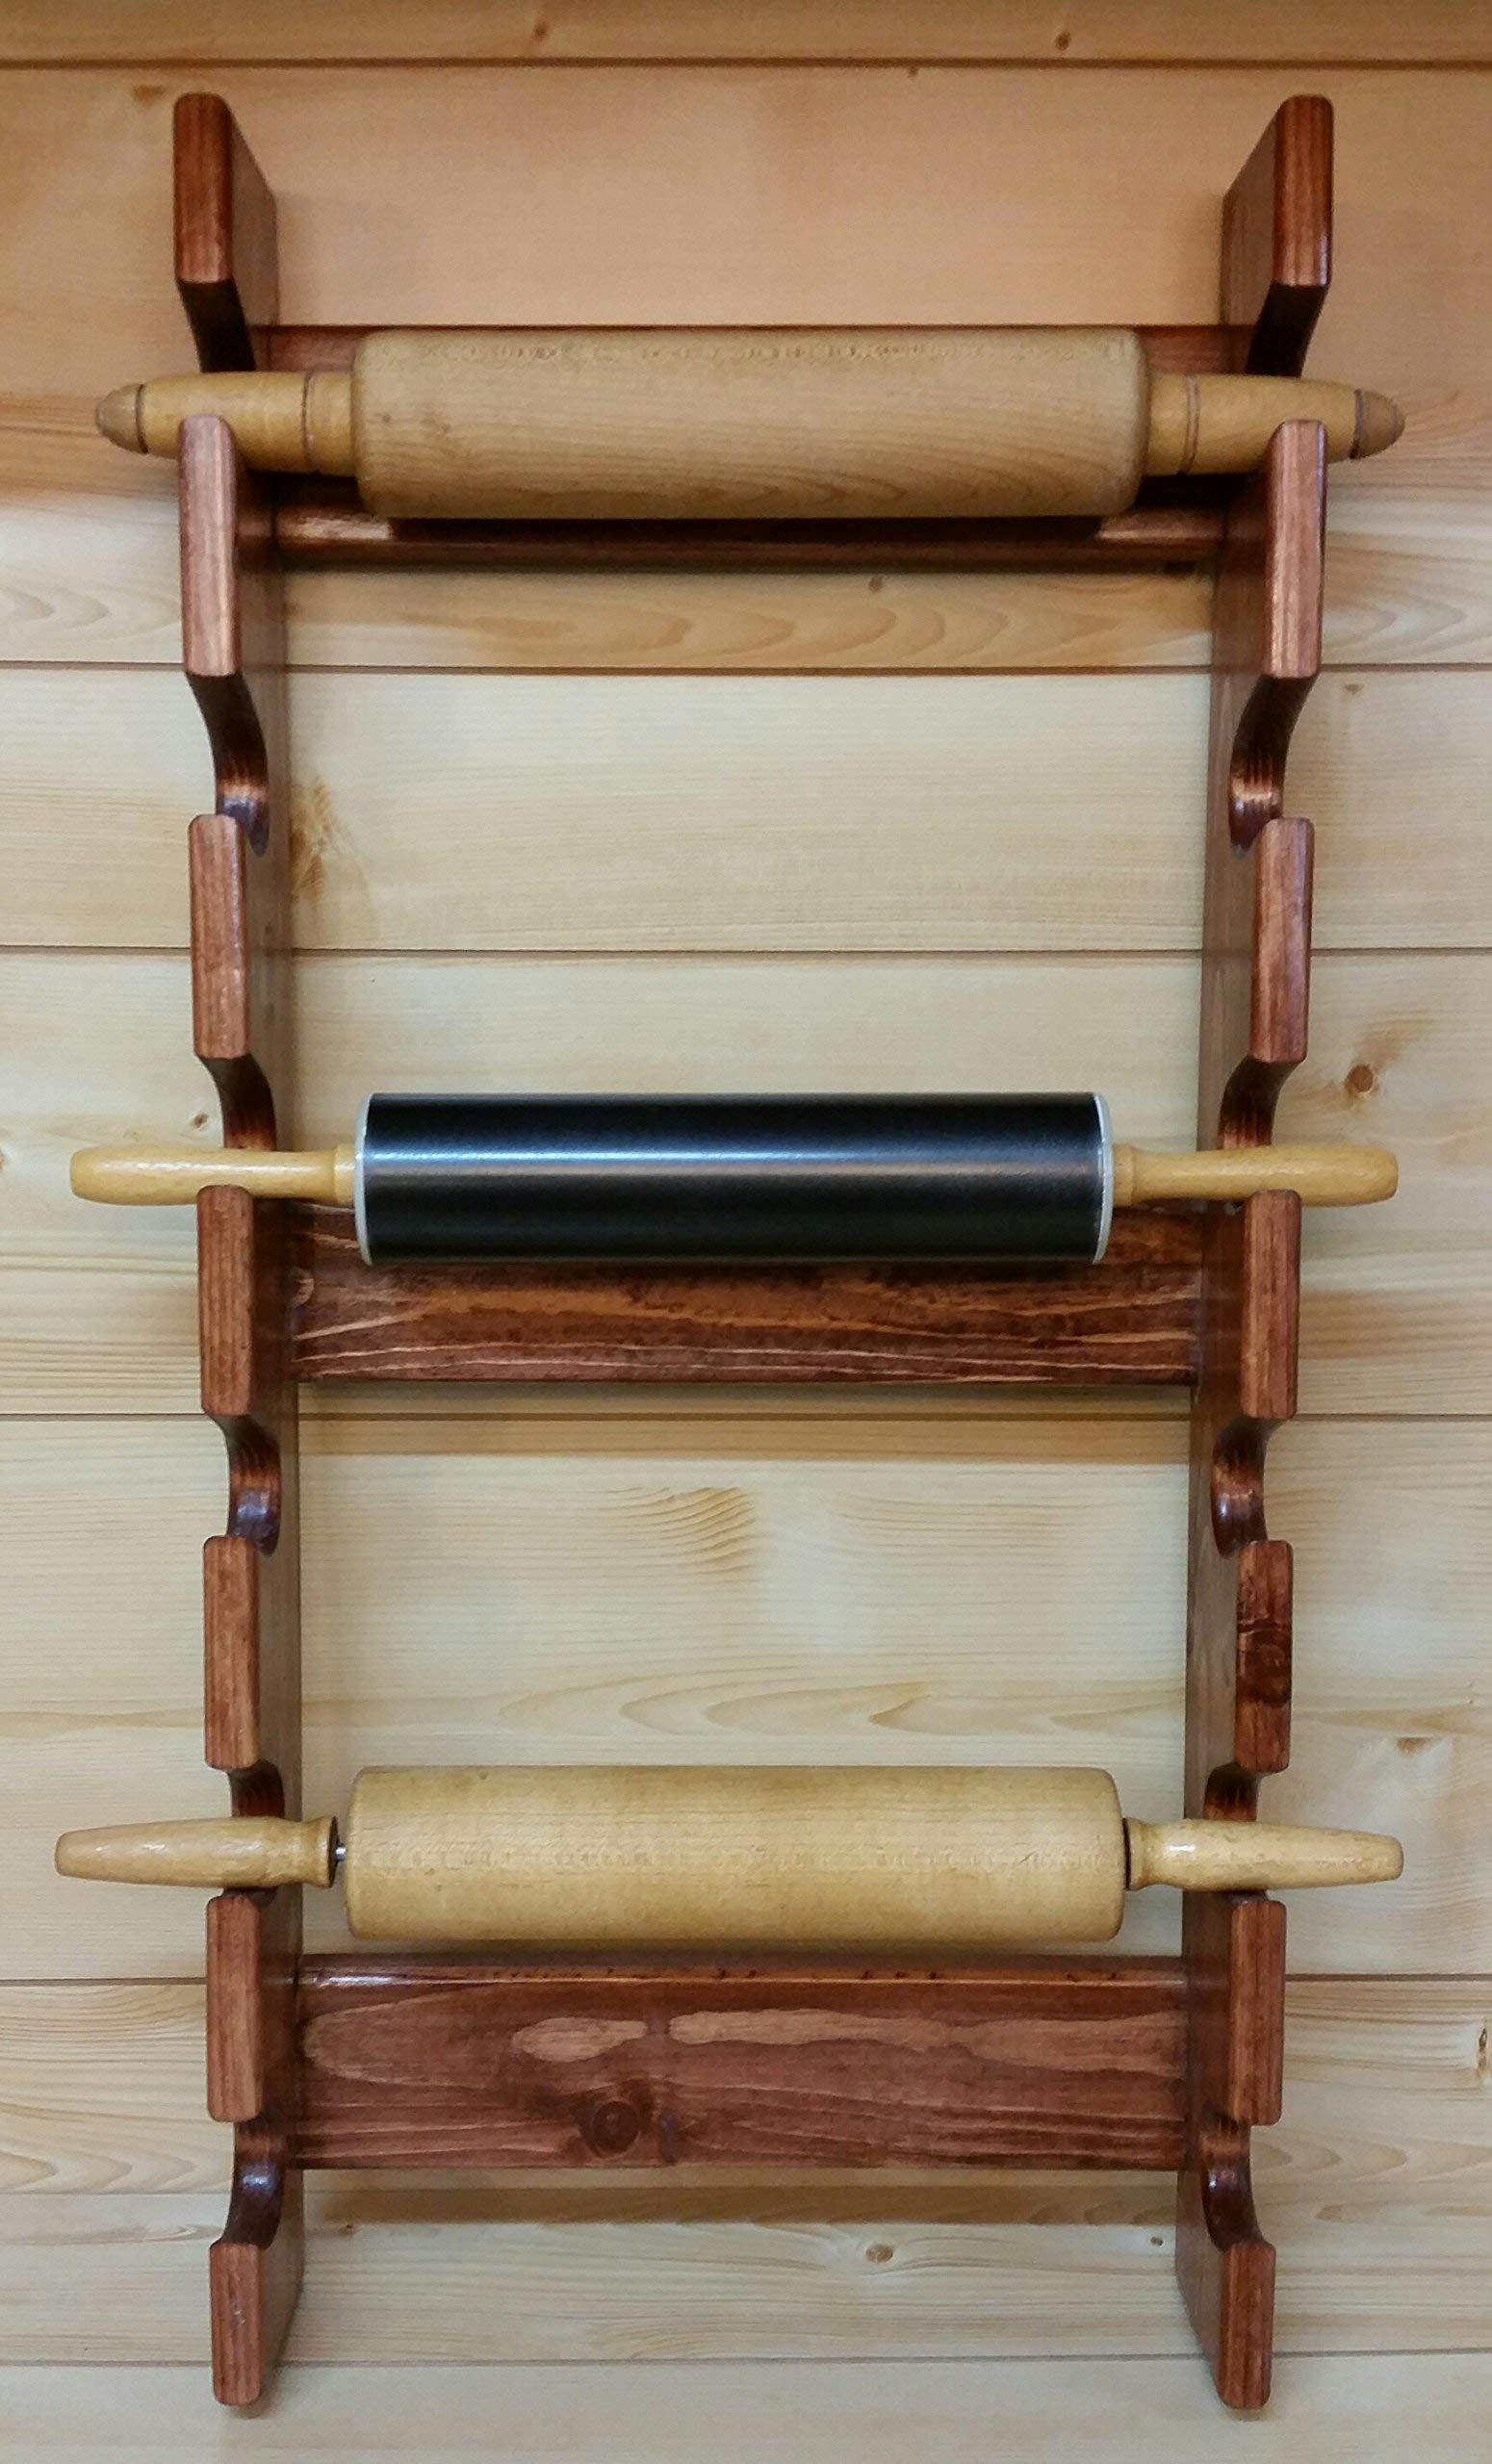 Rolling Pin Rack with Six Slots - Multiple Rolling Pin Rack - Rolling Pin Holder - Rolling Pin Storage - Rolling Pin Rack for 6 by Rusty Nail Custom Woodworking (Image #3)